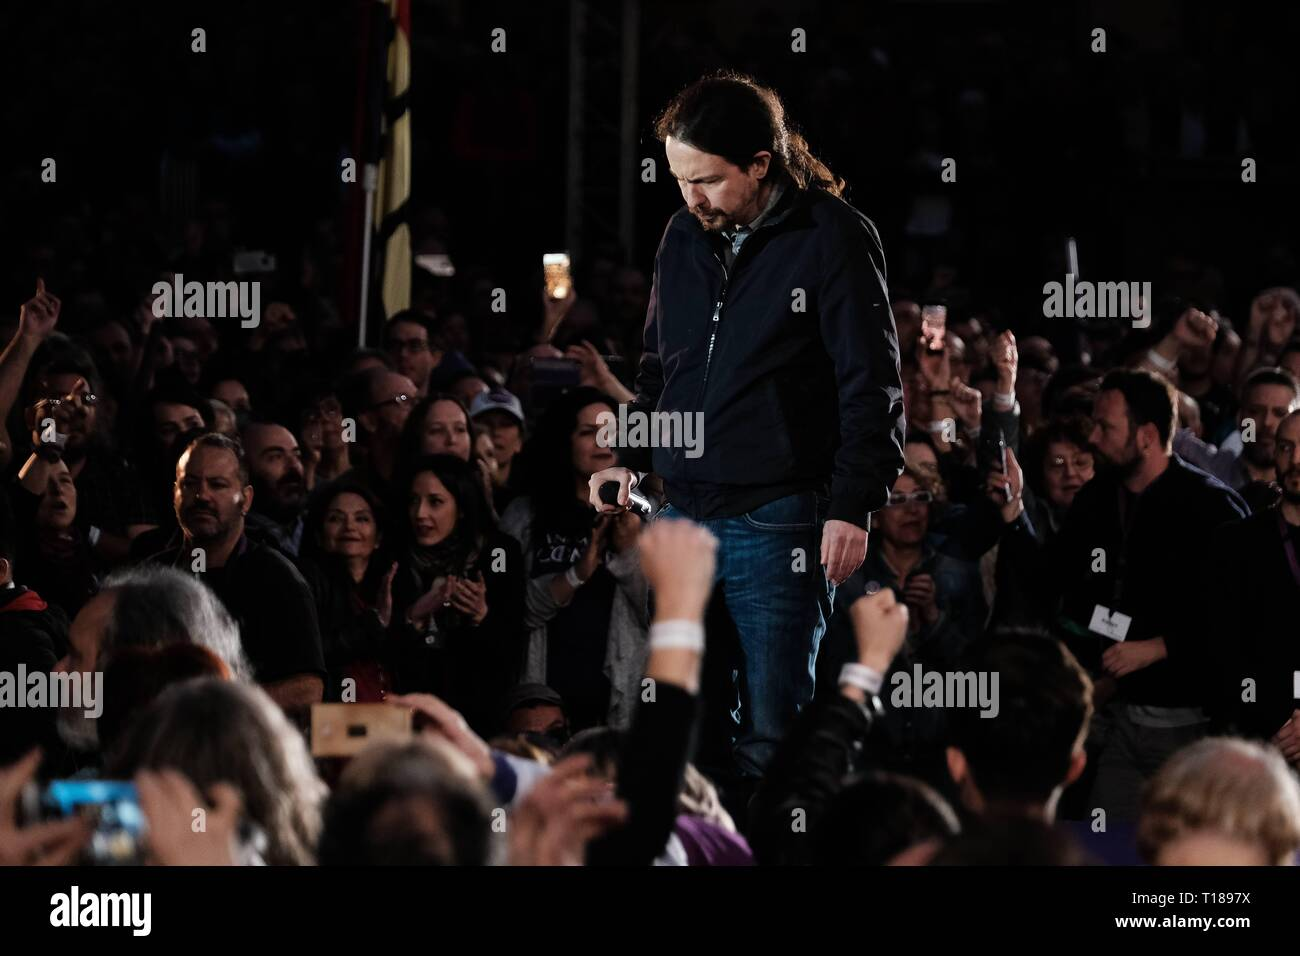 Pablo Iglesias reappears after his paternity leave in a first pre-campaign of Podemos  Cordon Press - Stock Image